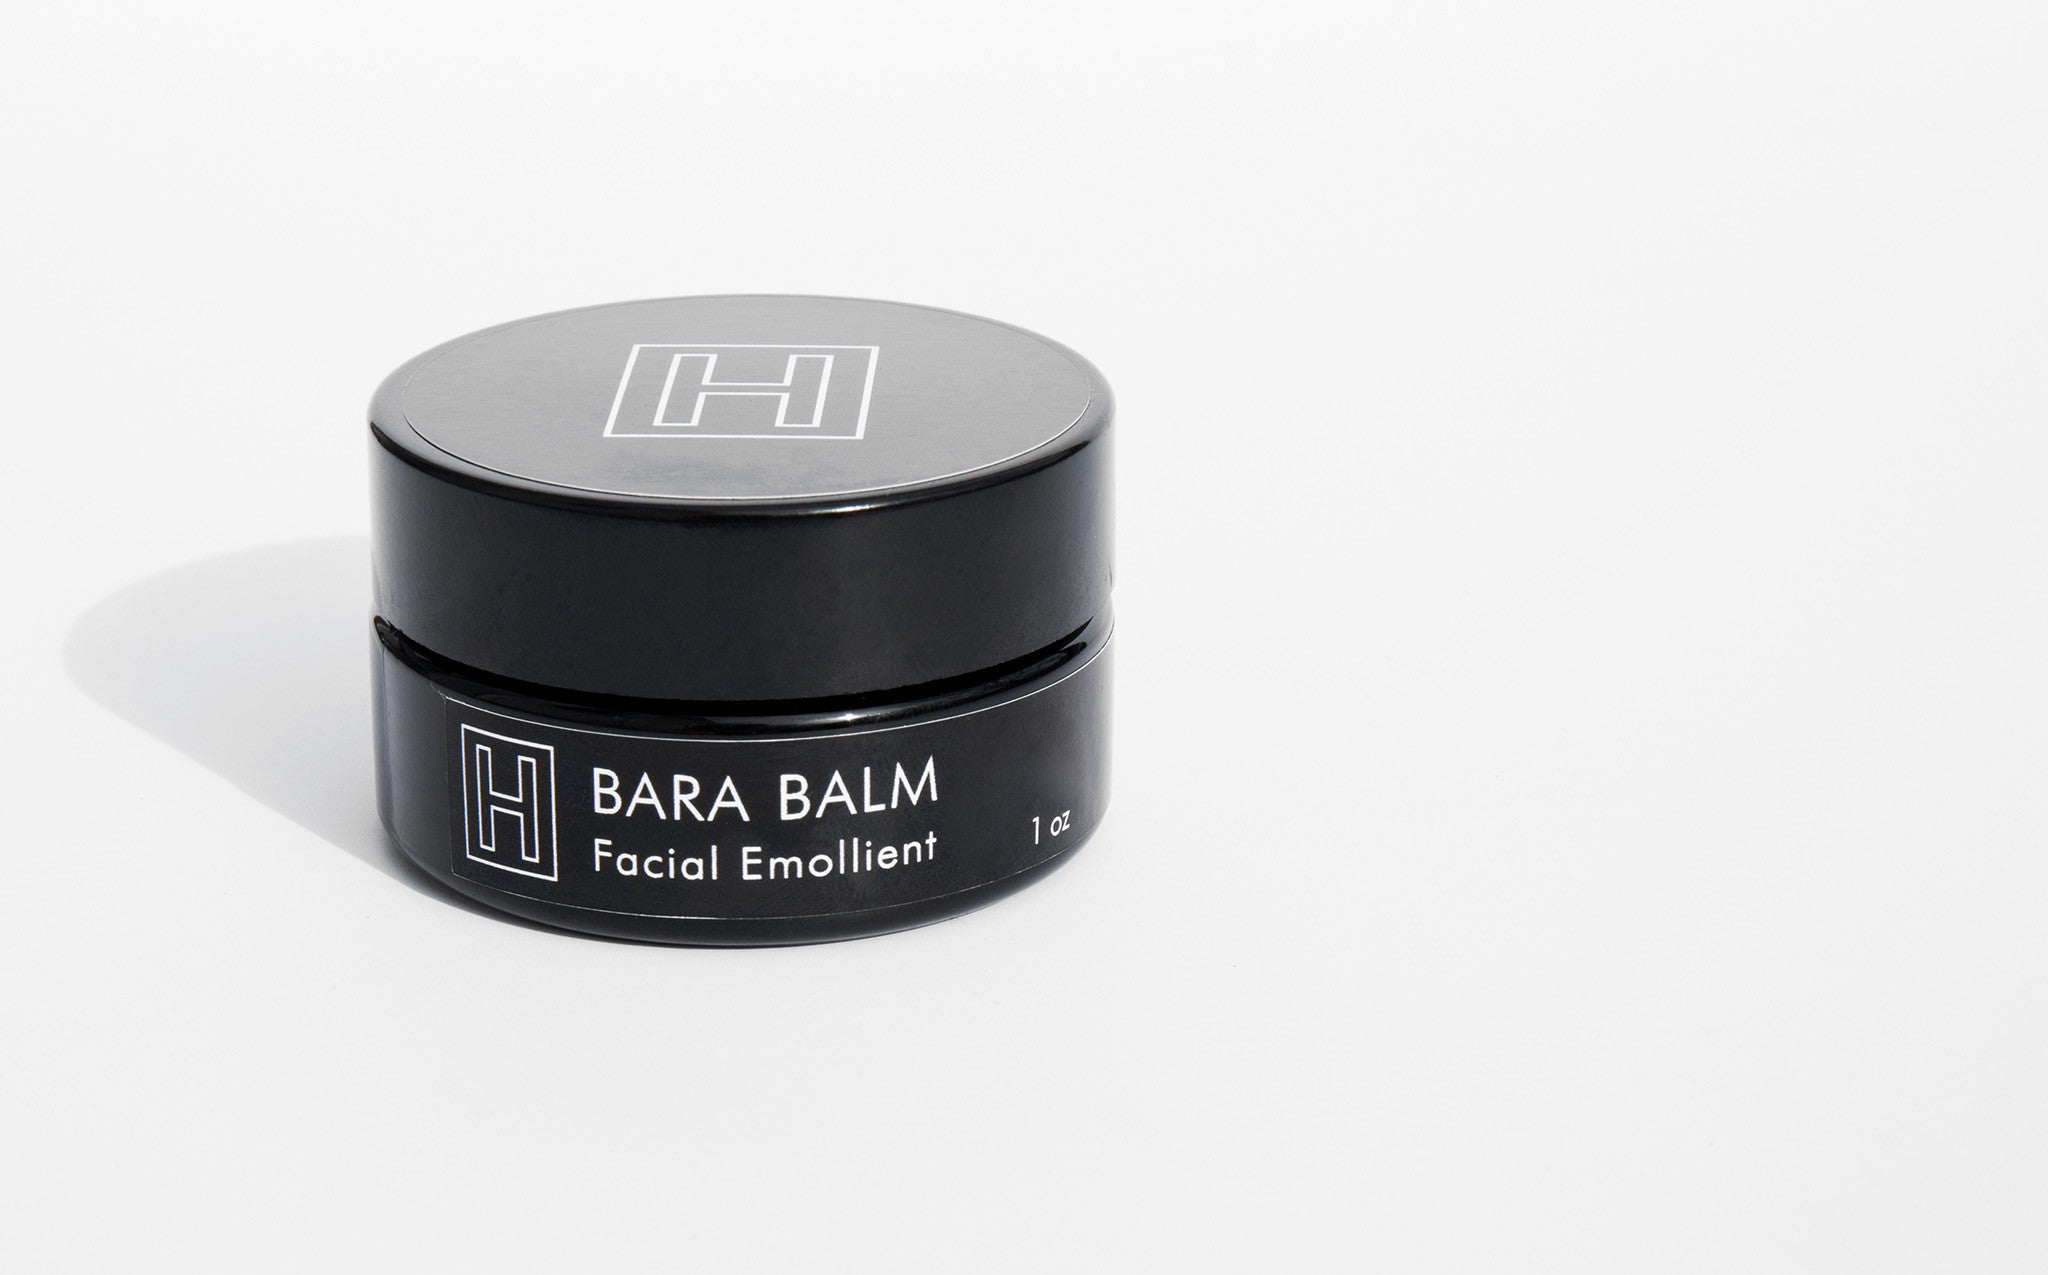 H is for Love Bara Balm Facial Emollient kindred black